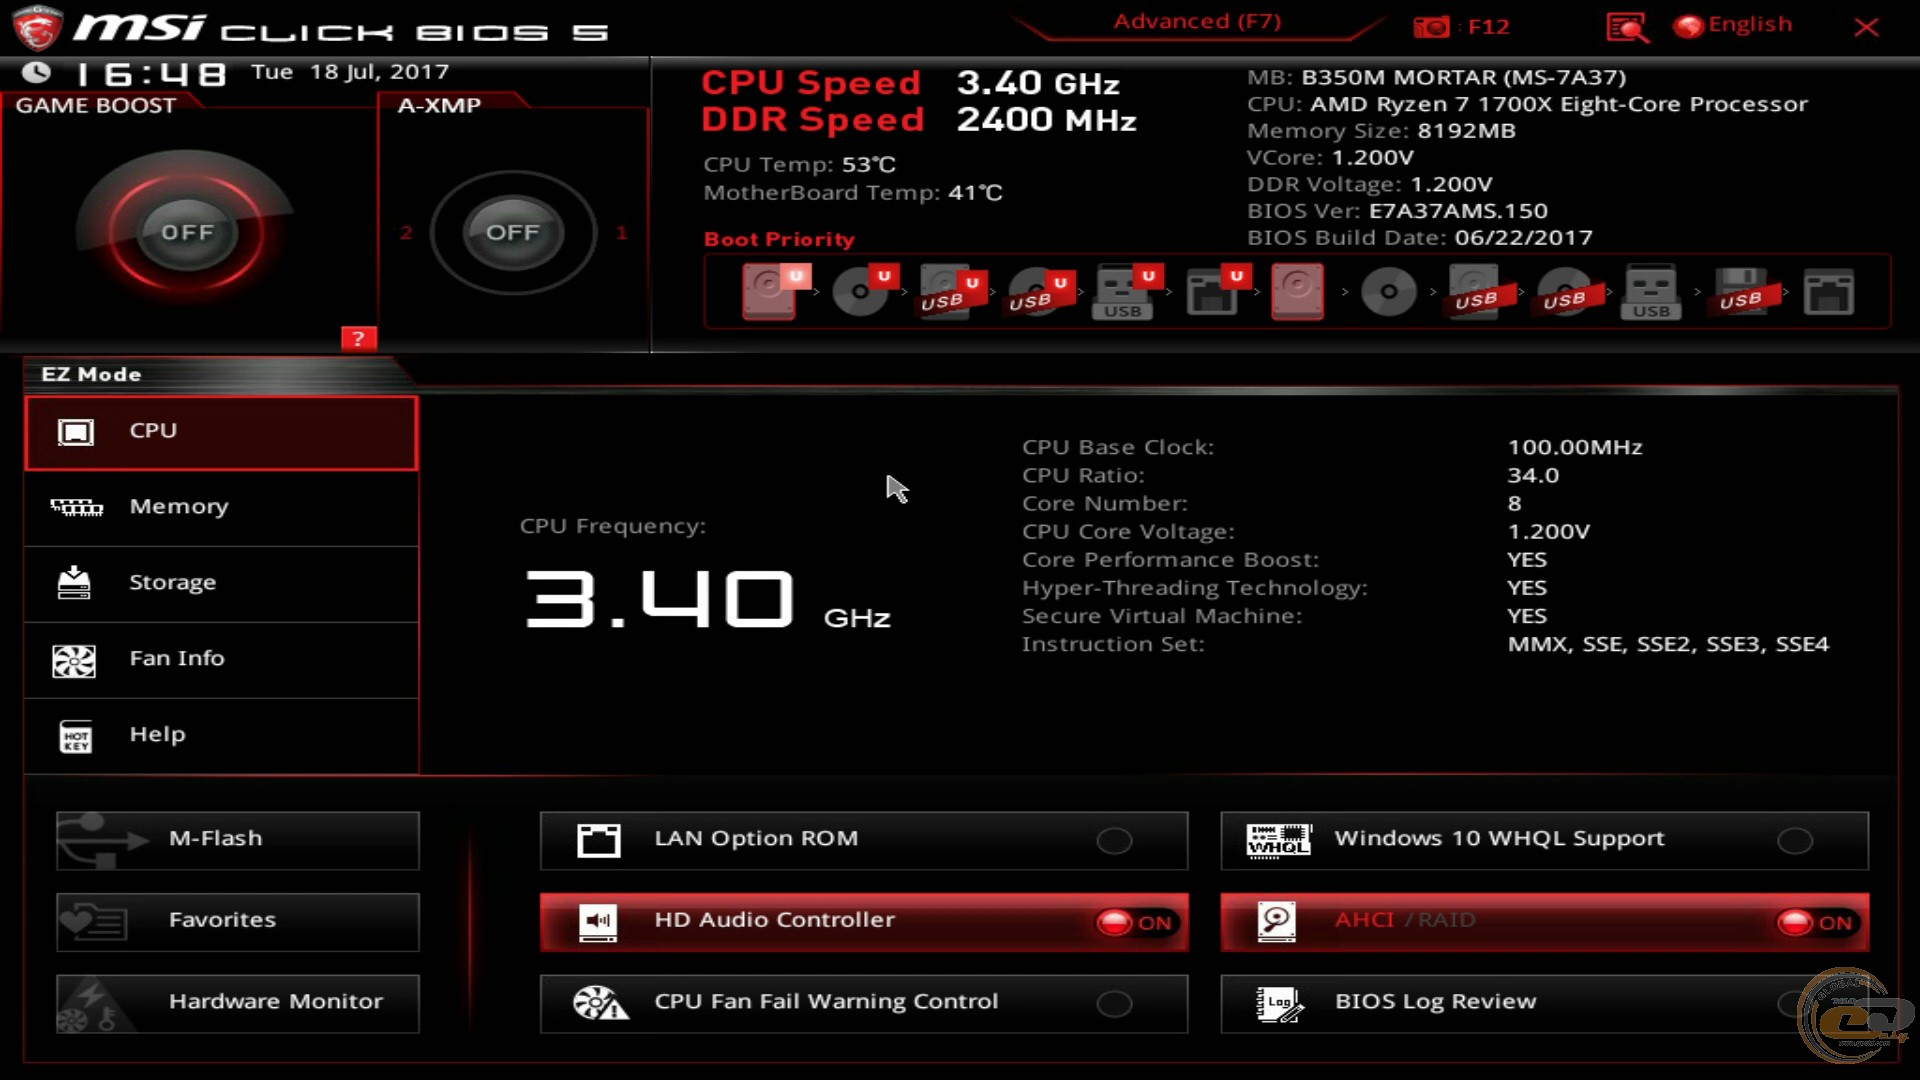 MSI B350M MORTAR BIOS